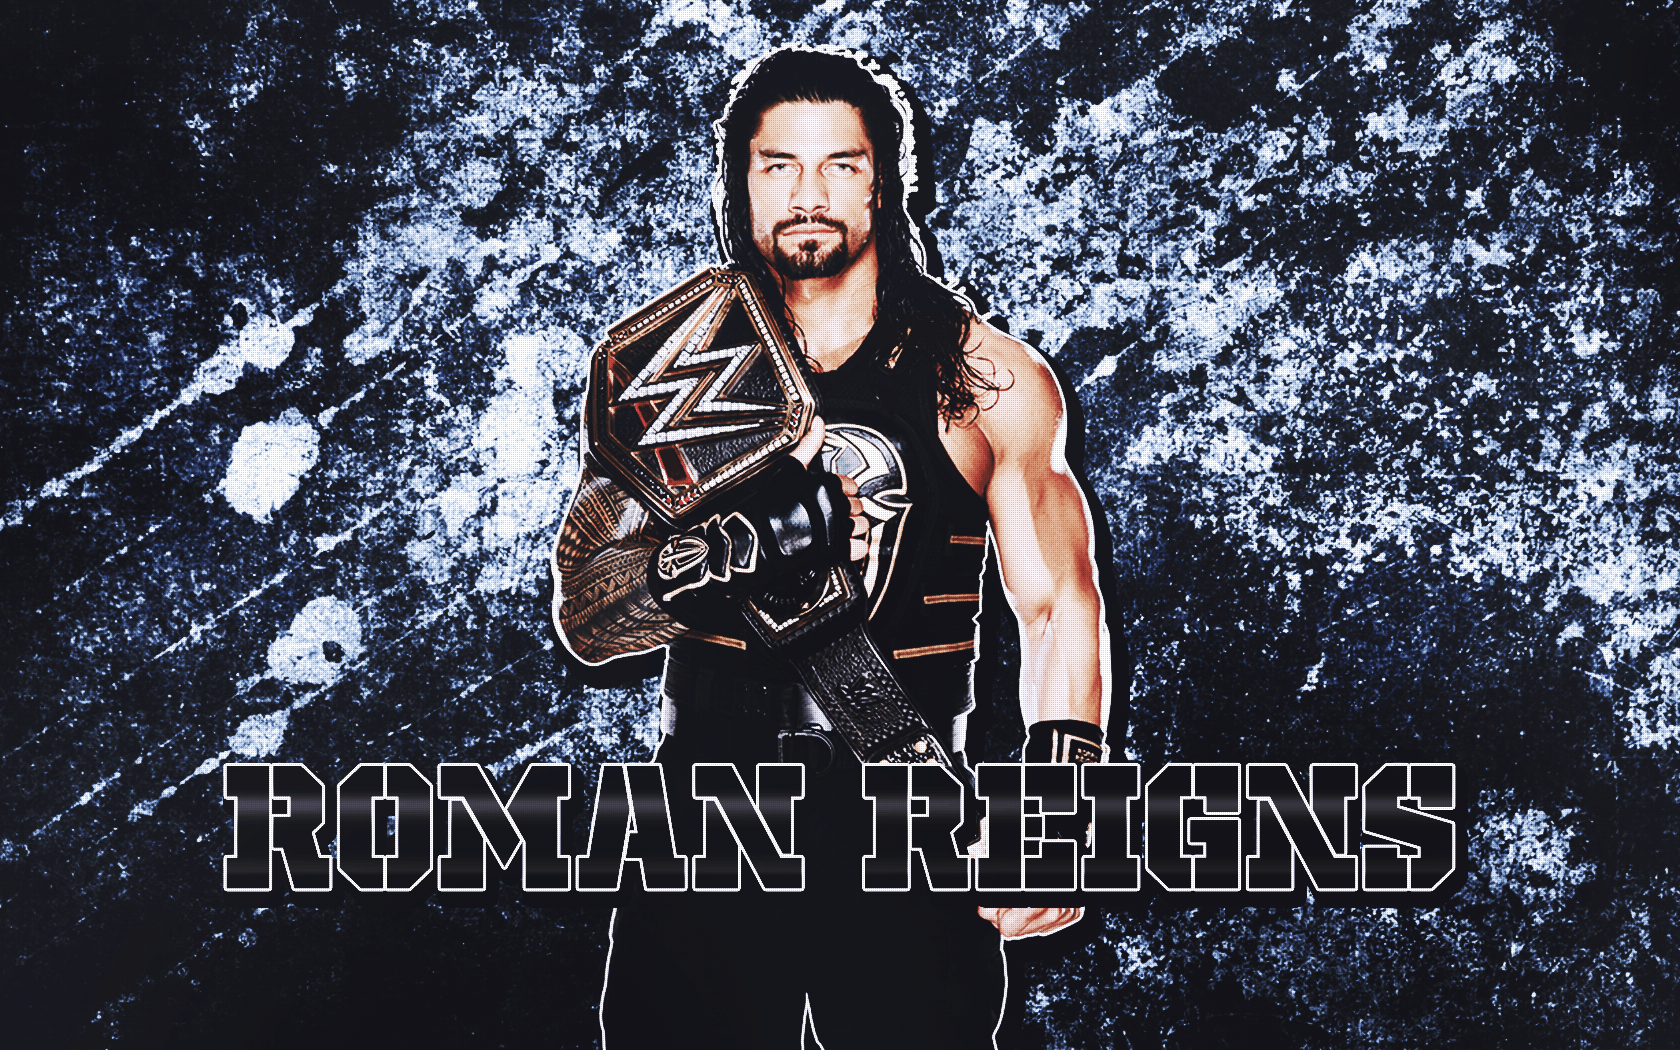 Roman Reigns Wallpapers 1680x1050